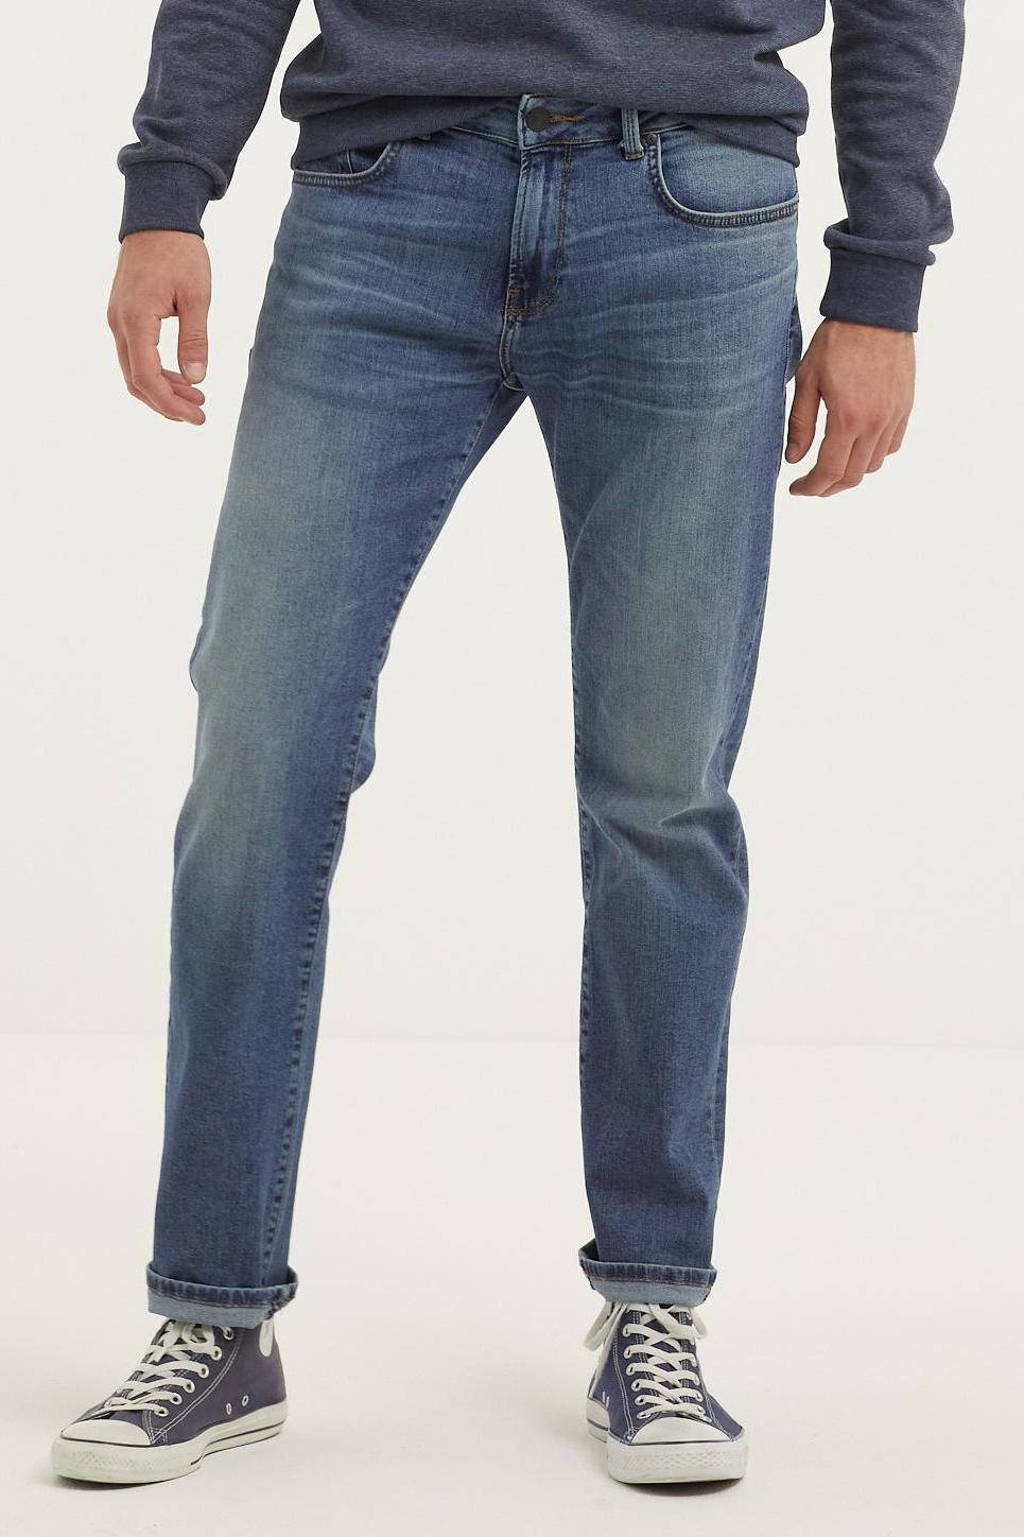 LTB straight fit jeans Hollywood altair wash, Altair wash blue